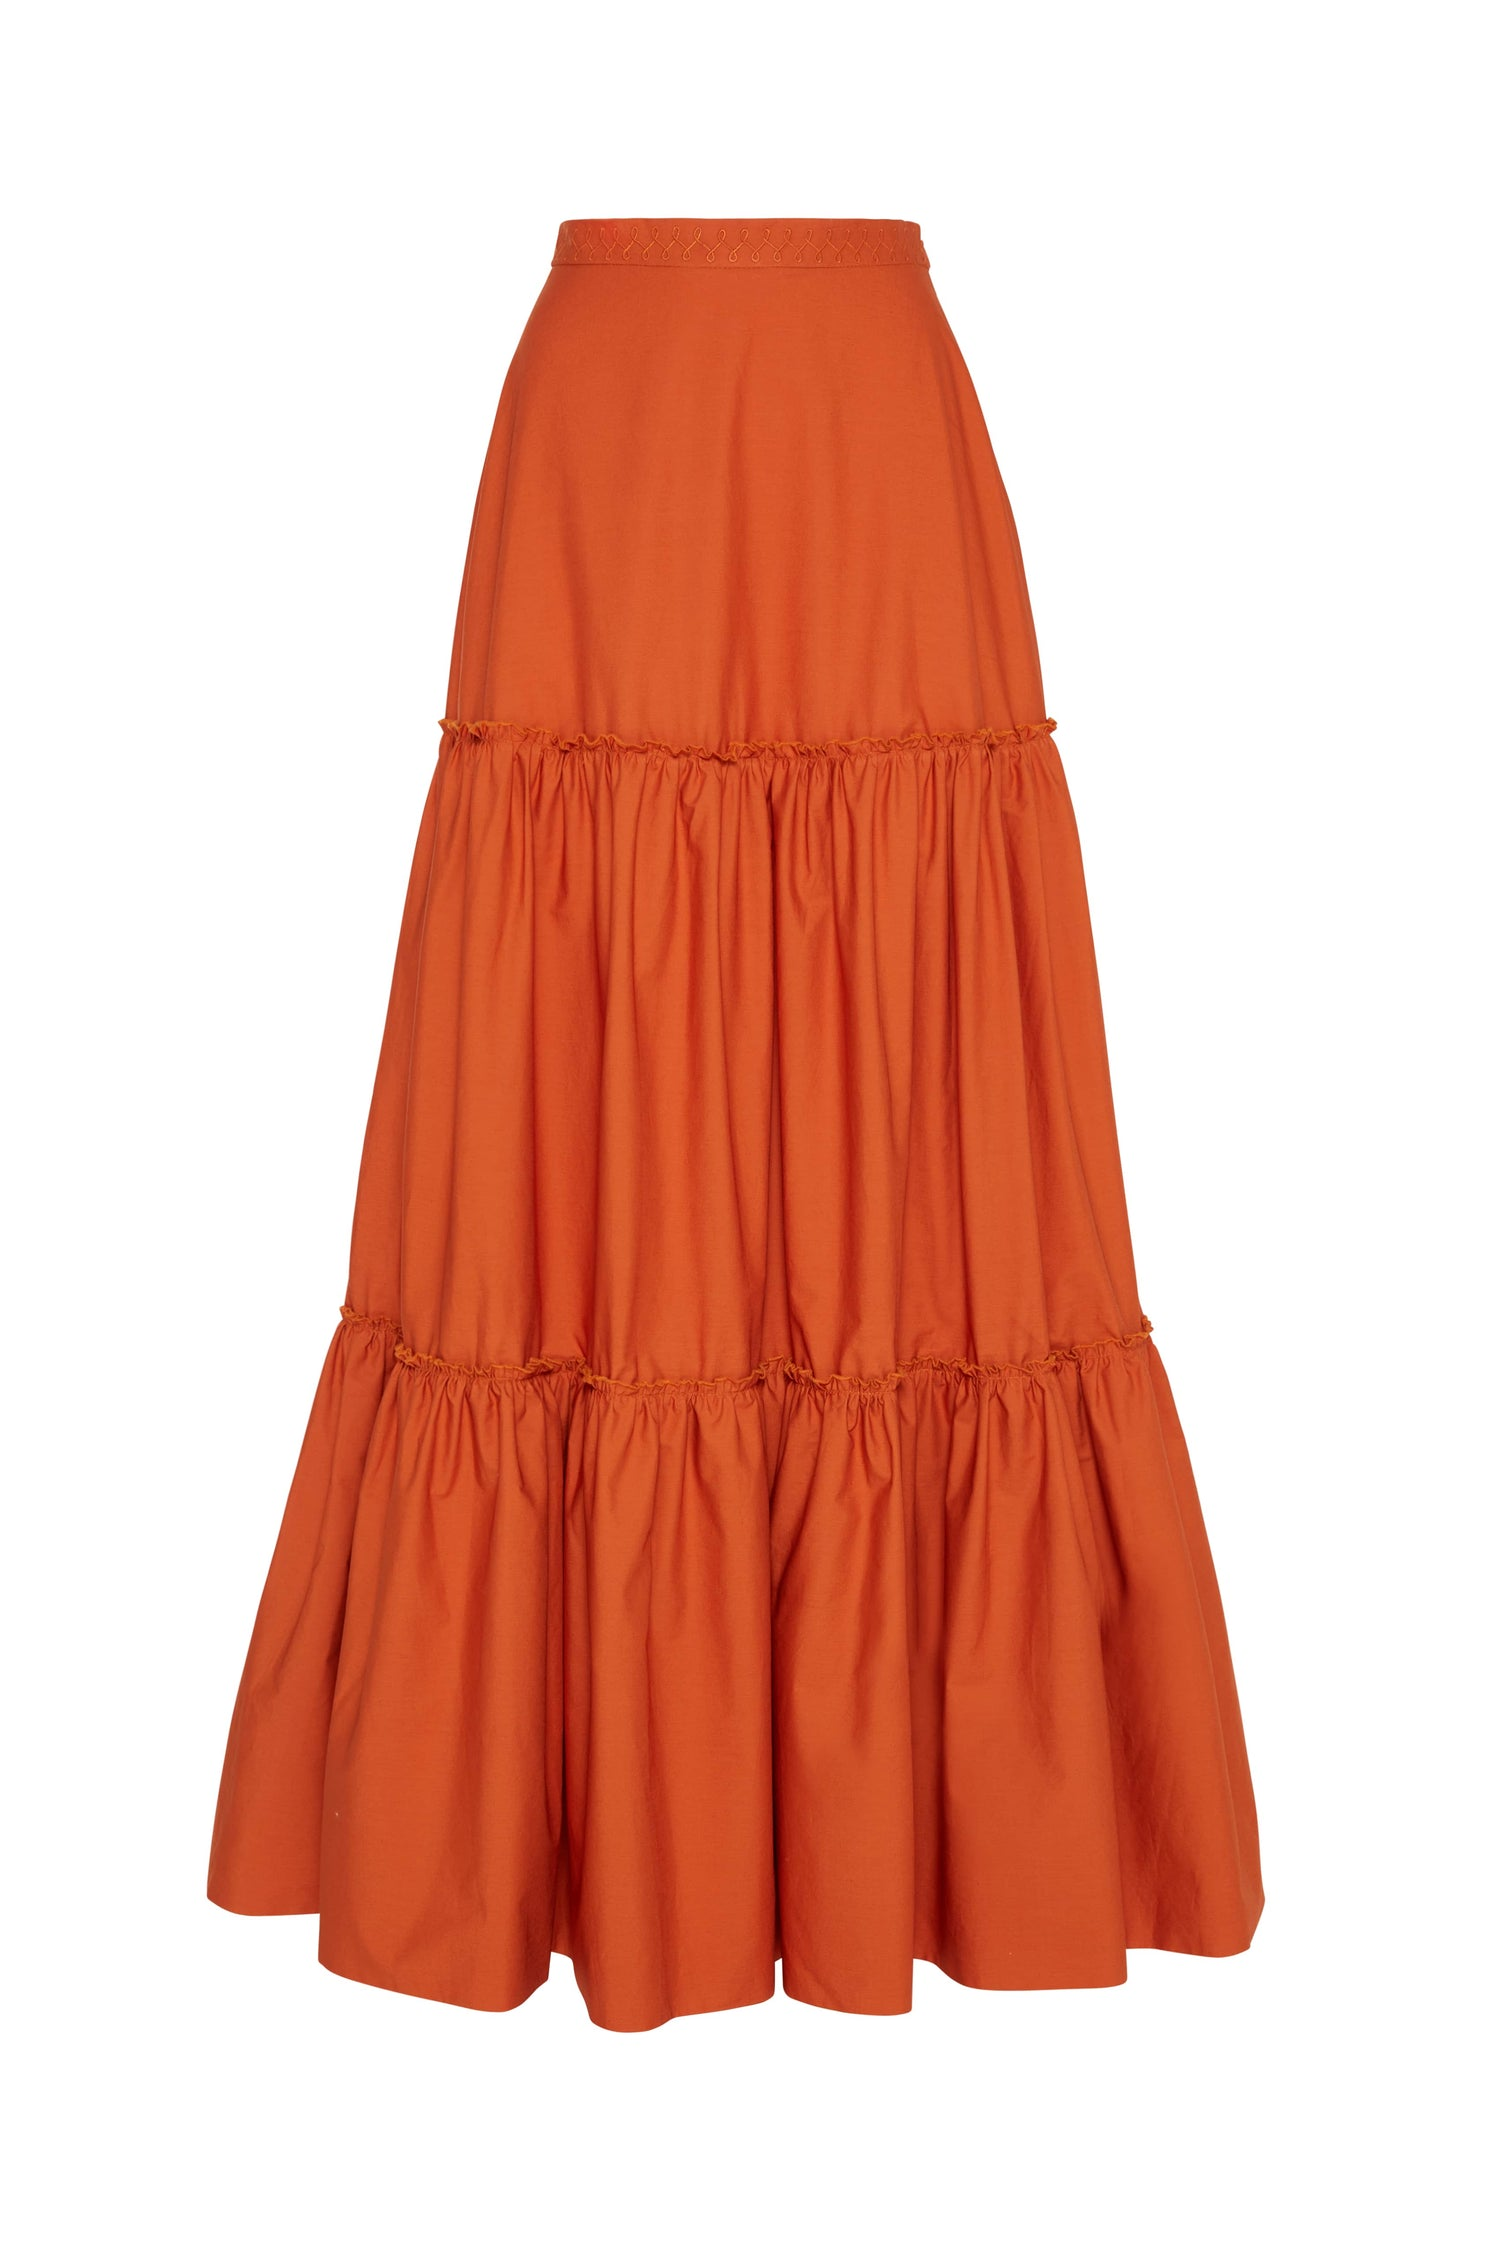 CHARLOTTE LONG SKIRT IN ORANGE POPLIN